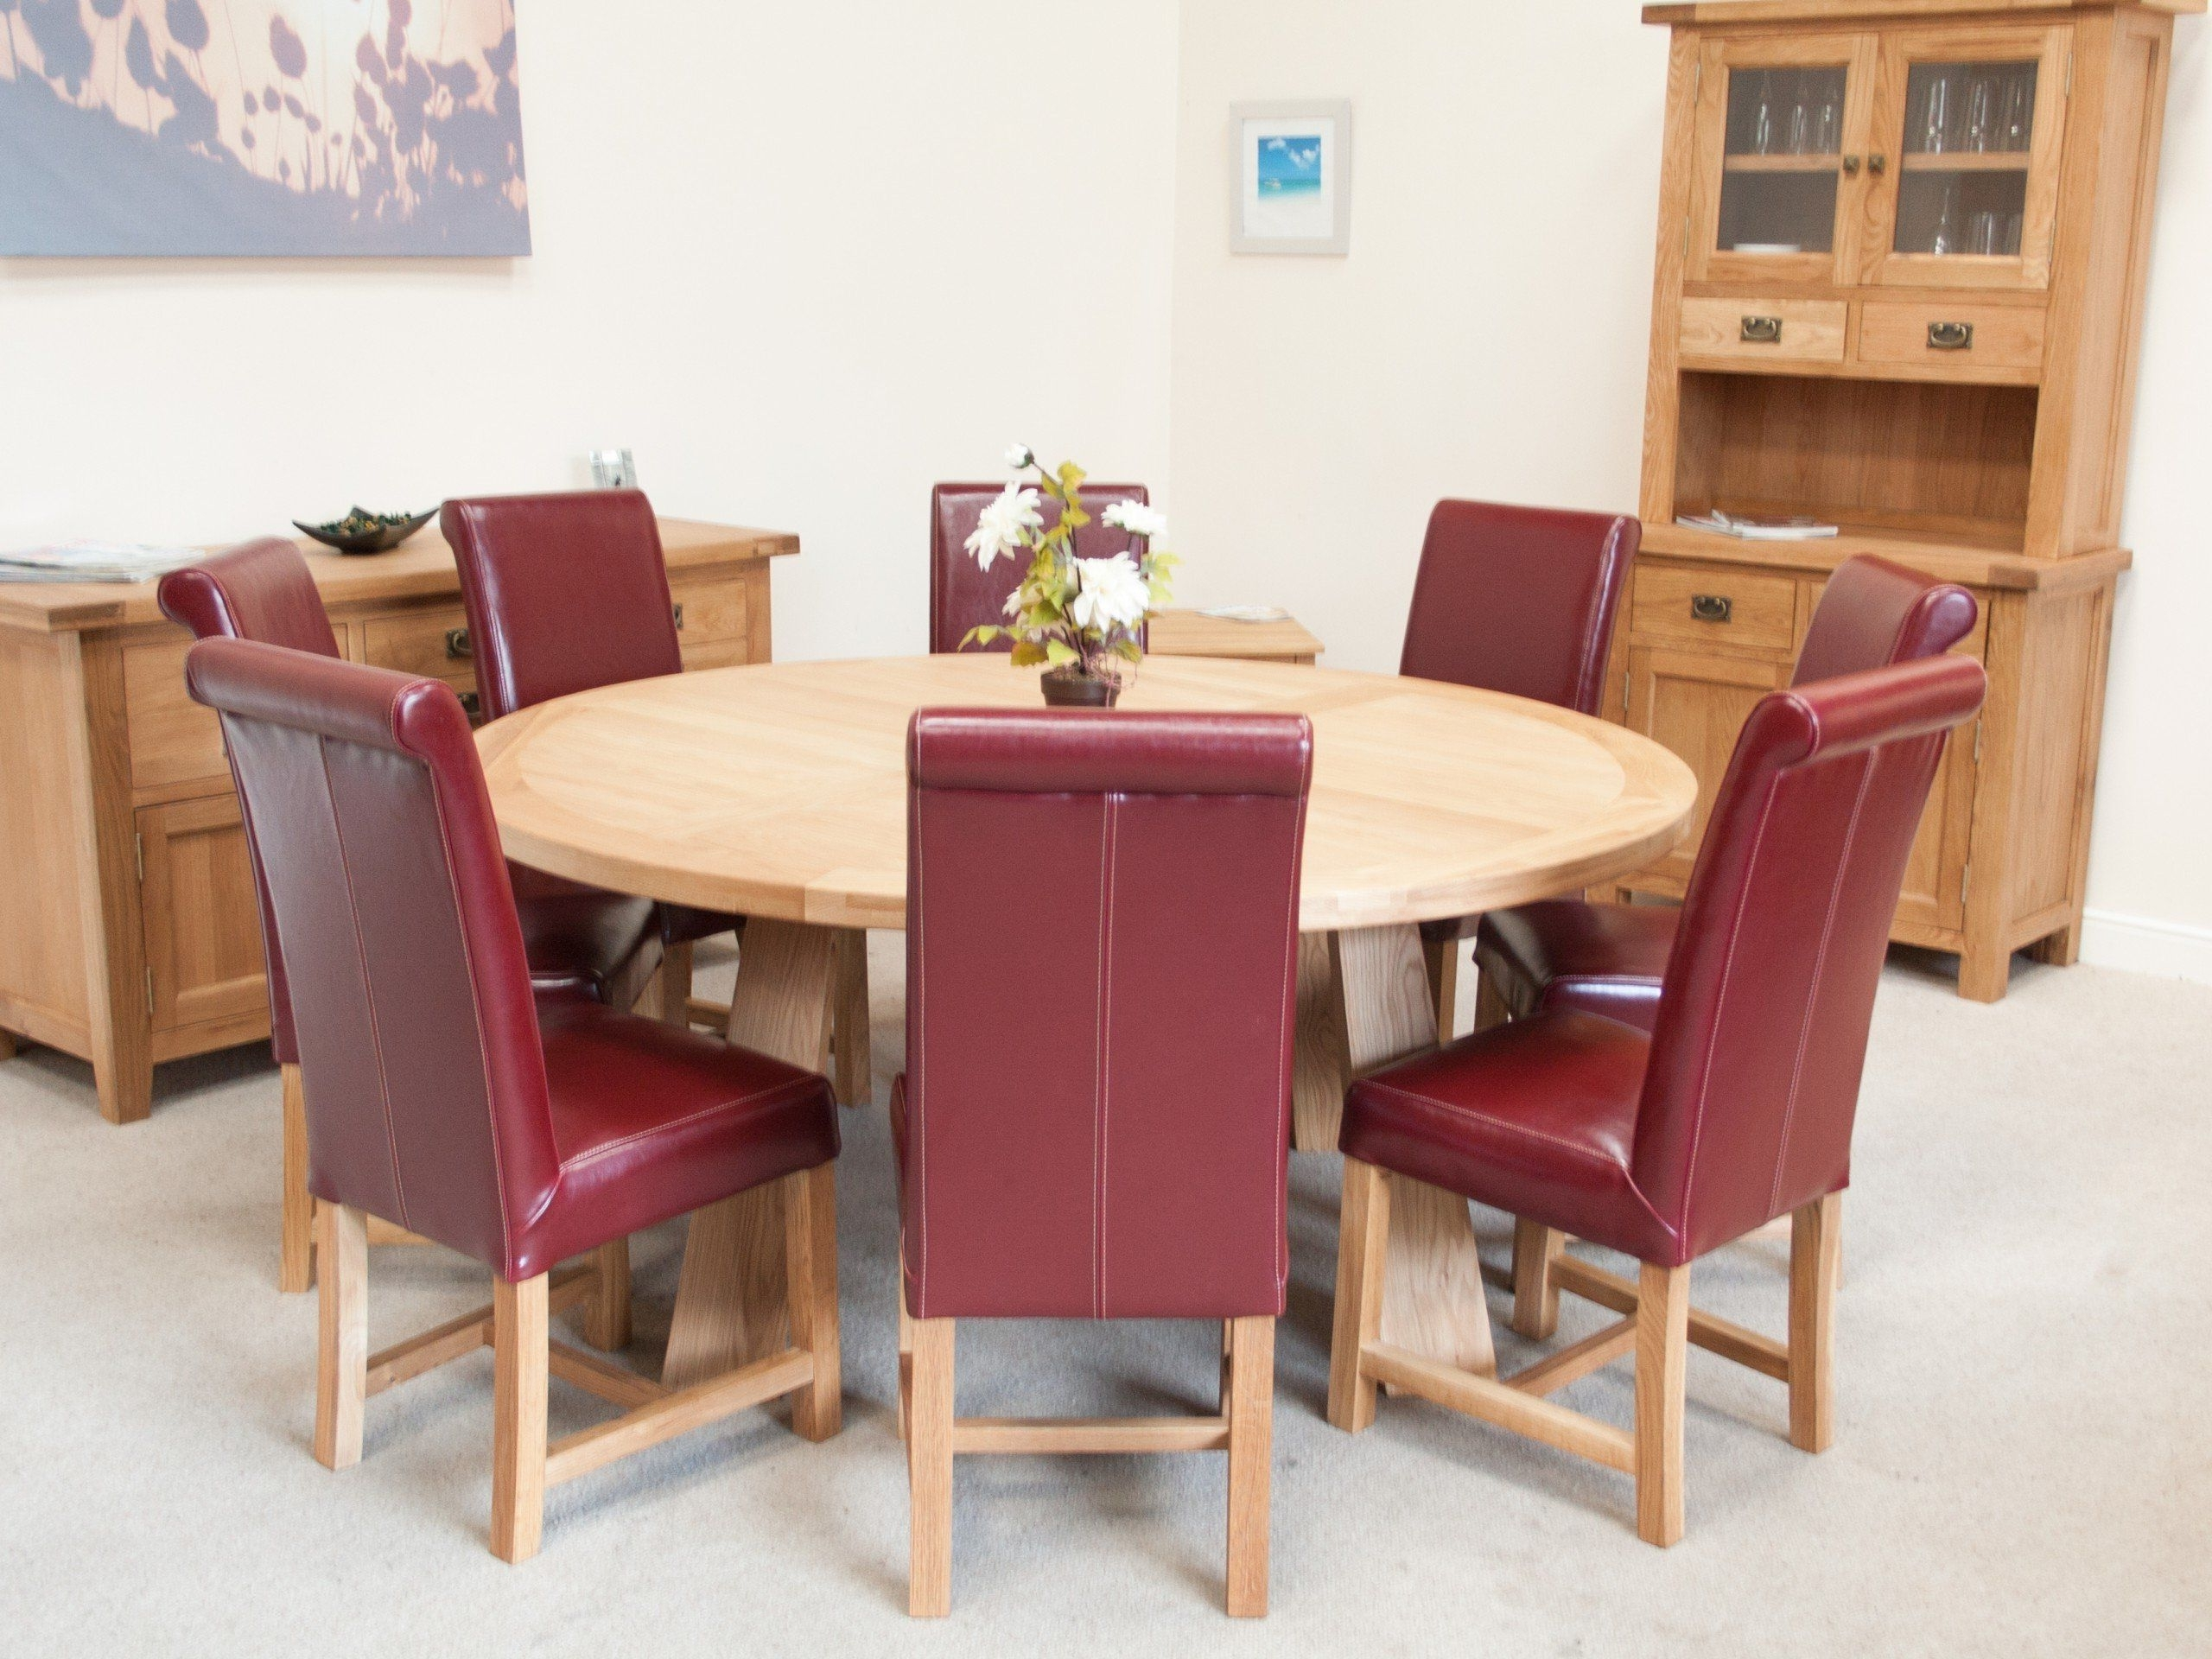 Well Known Round 6 Seater Dining Tables Intended For Large Round 6 Seater Oak Dining Room Table – Top Furniture – Need An (View 23 of 25)